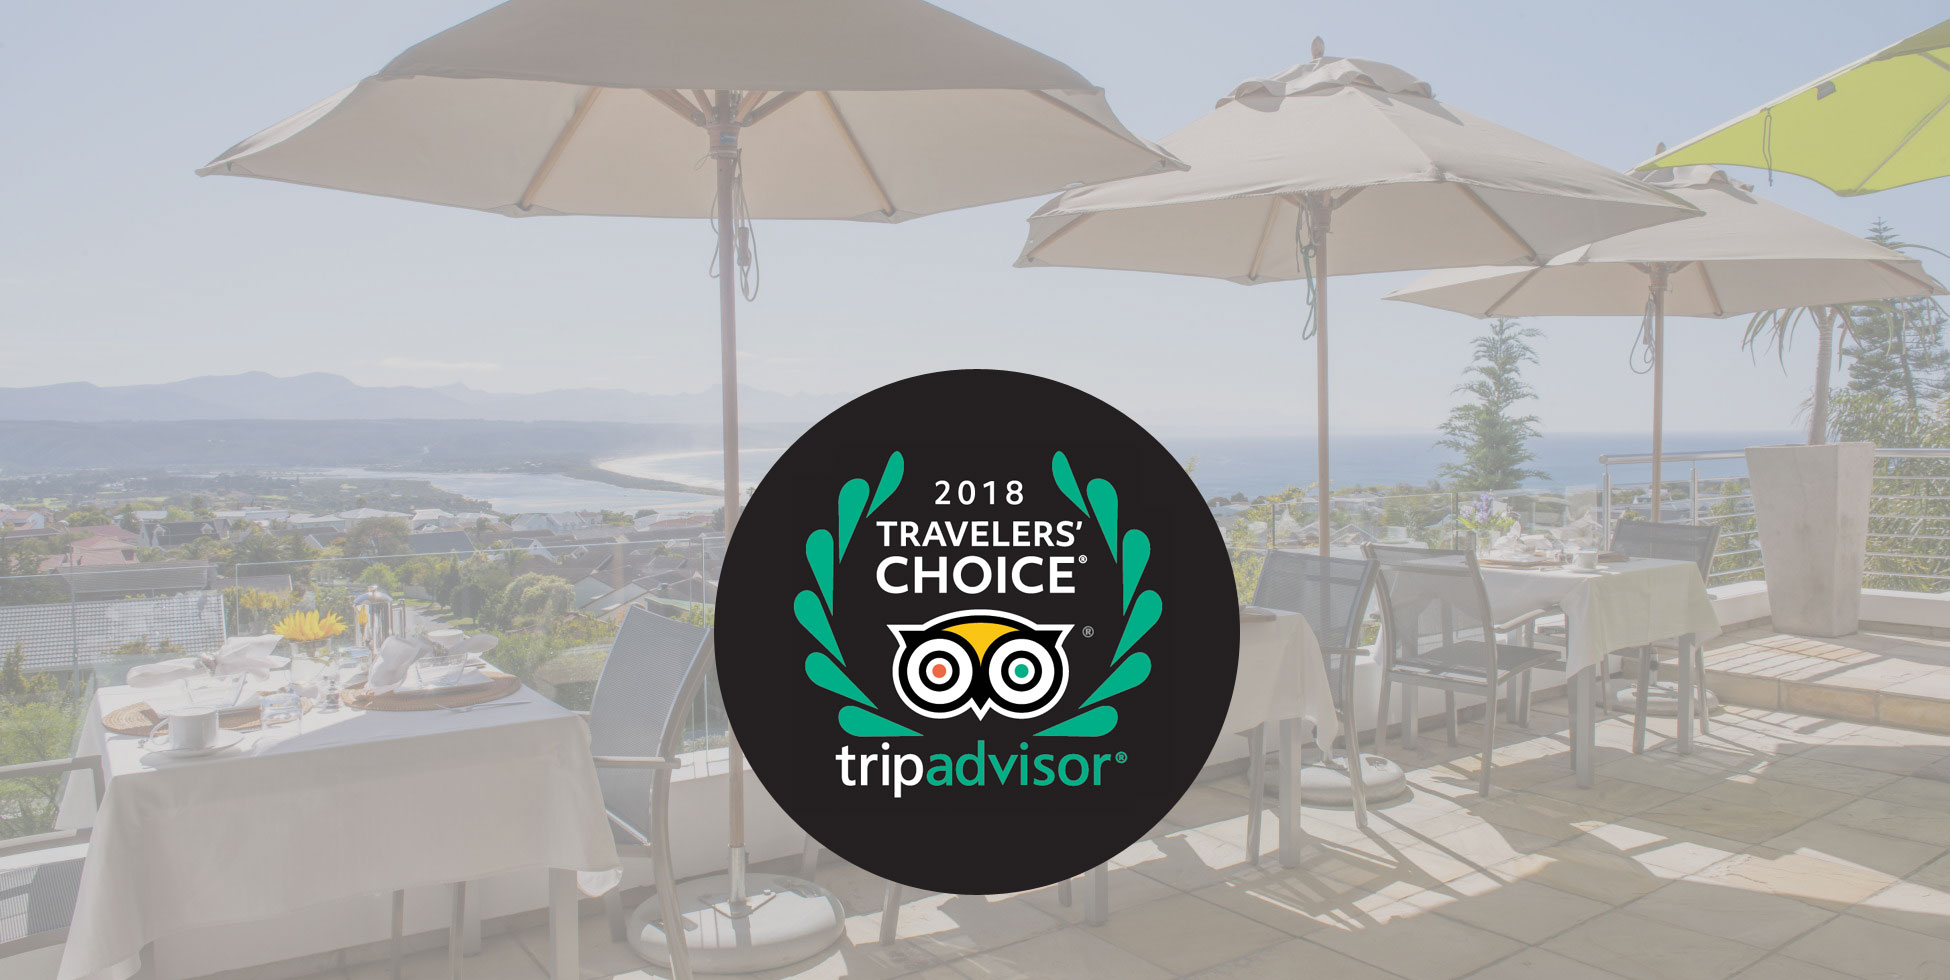 Proud Winner of 2017 & 2018 Trip Advisor Travelers' Choice Award